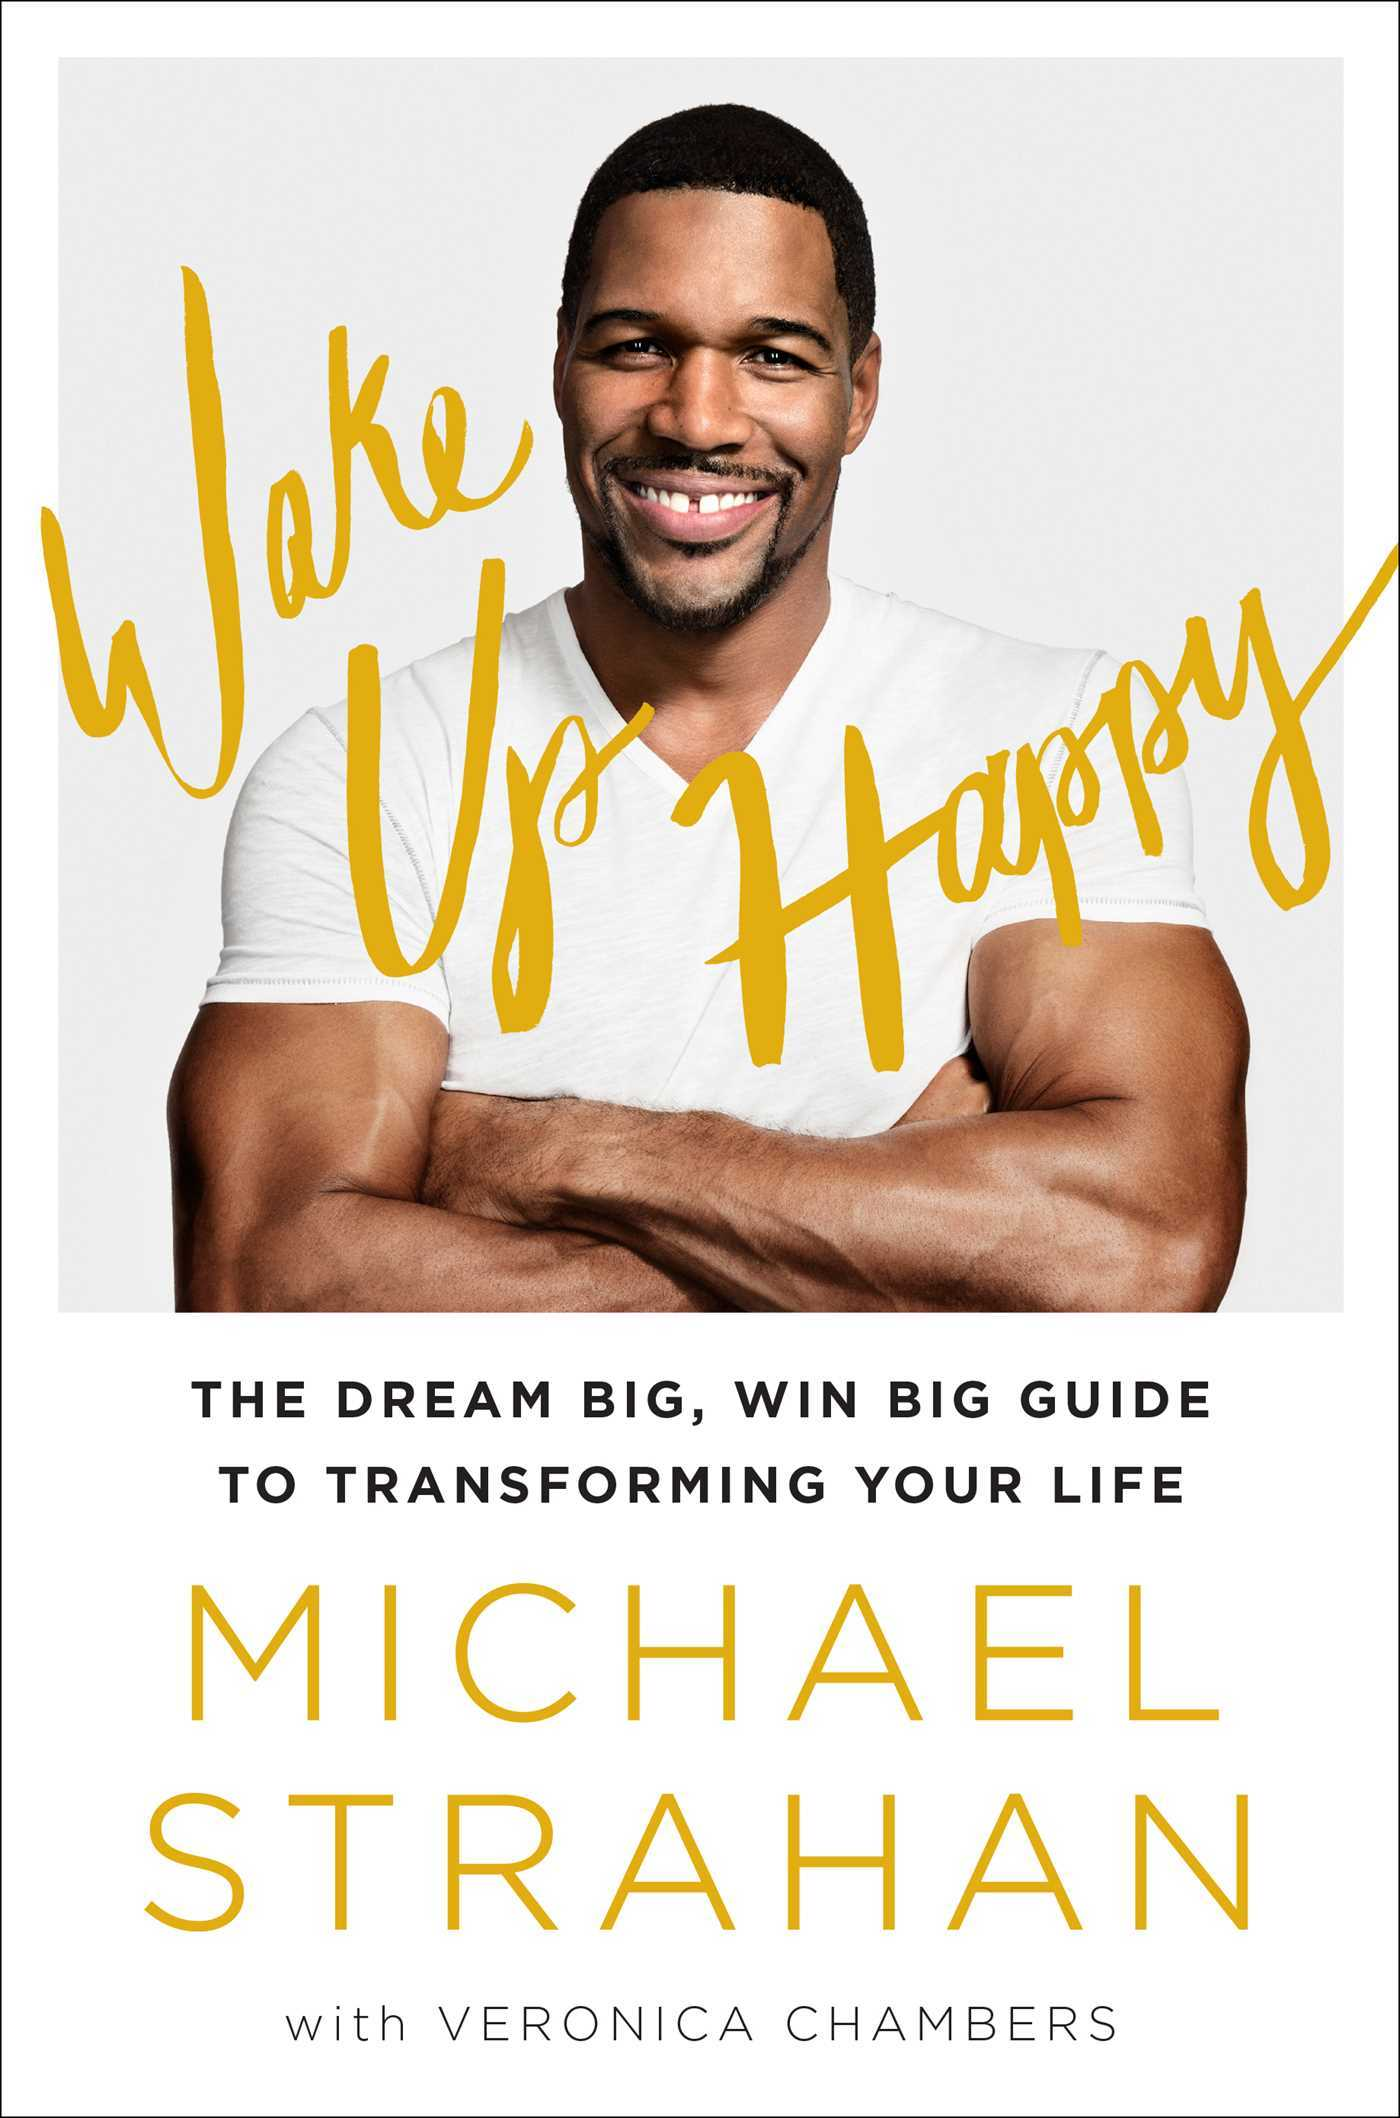 Wake-up-happy-the-dream-big-win-big-guide-to-transforming-your-life